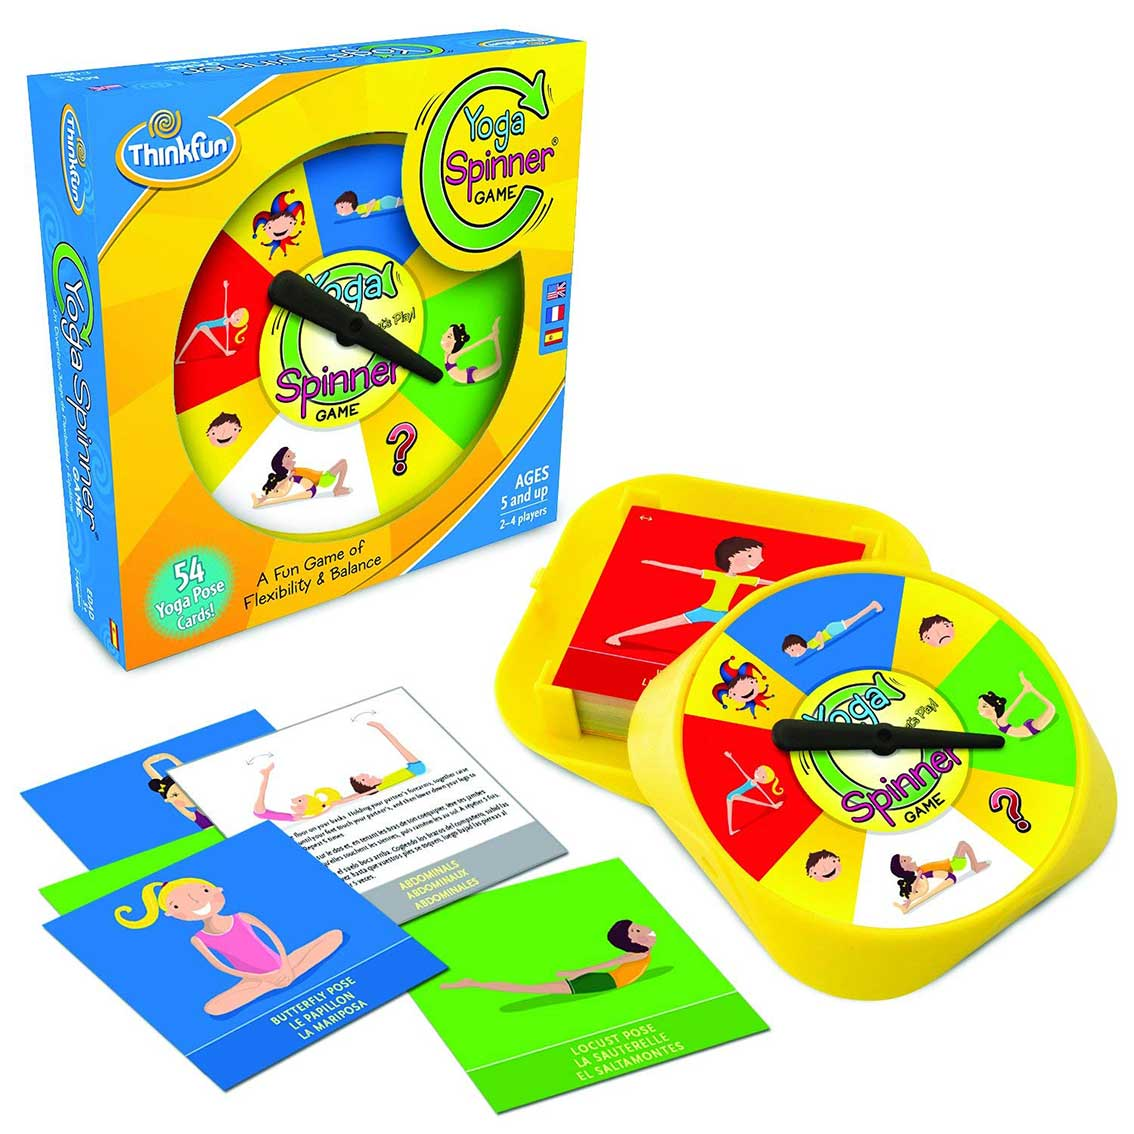 Juego Educativo Think Fun Yoga Spinner